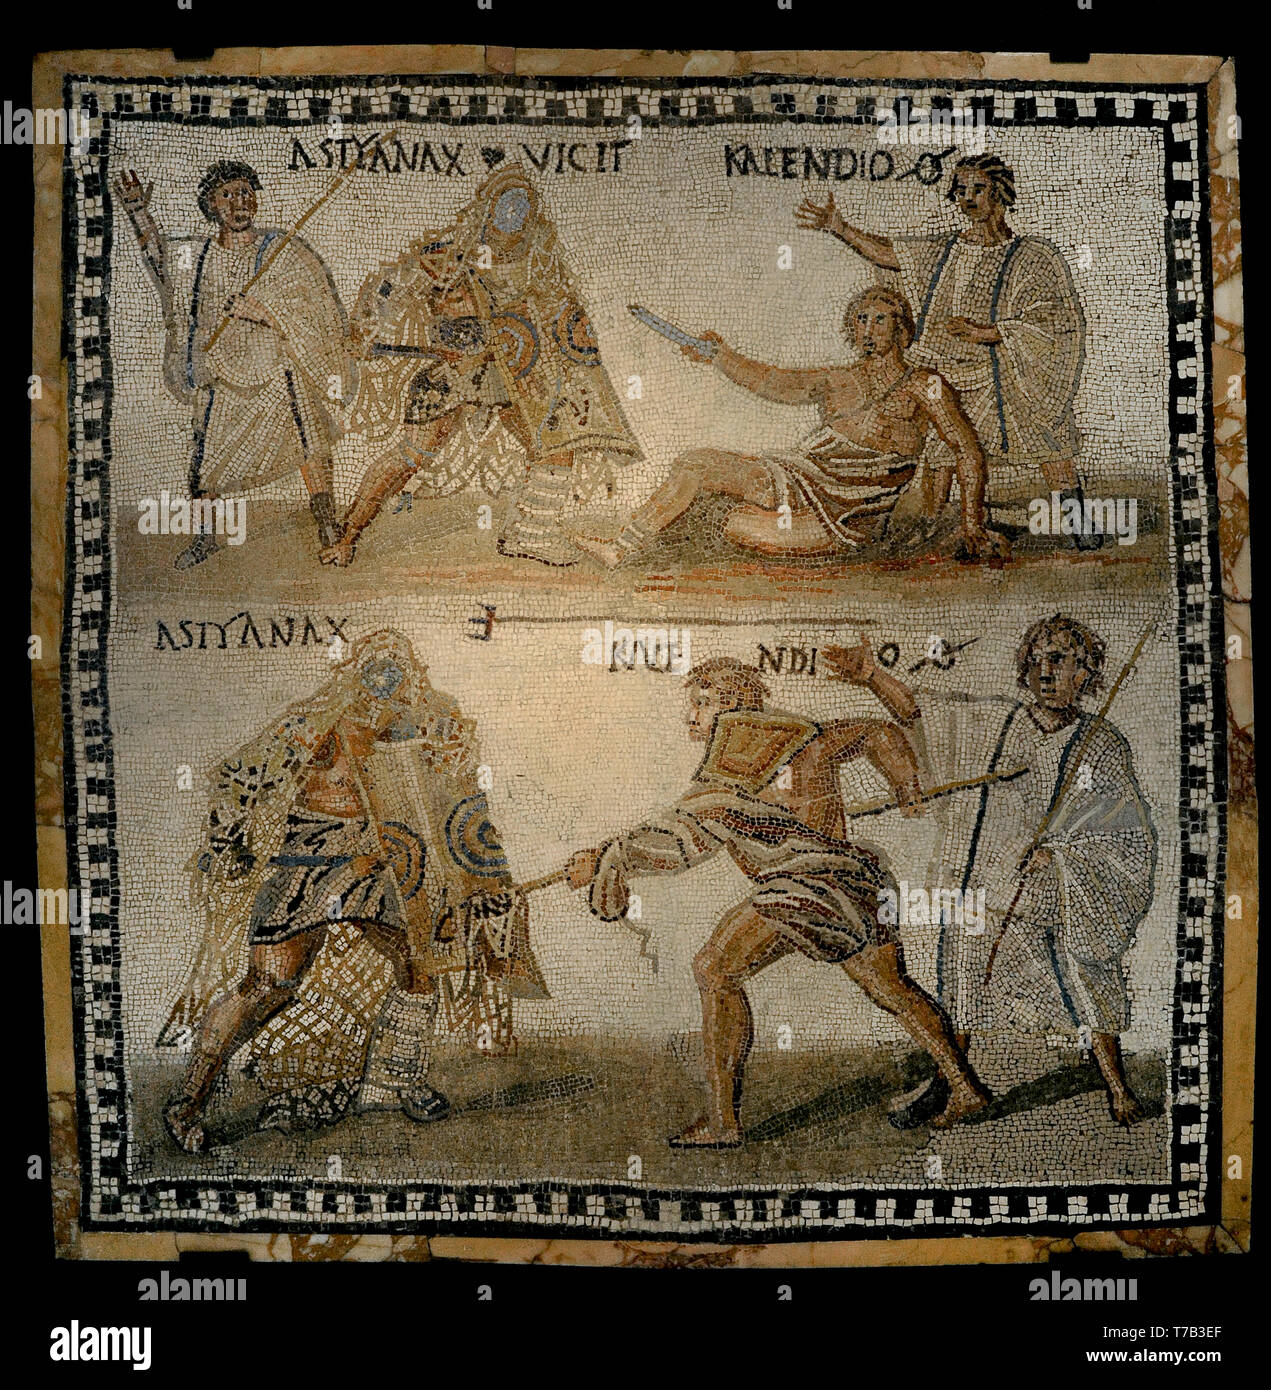 Roman mosaic. Limestones. Secutor versus retiarius. Depiction of the mortal combat between the secutor Astyanax and the retiarius Kalendio. The lanista (gladiator trainer) encourages the combat. Astyanax was the winner (the inscription VICIT appears beside Astyanax). 3rd century AD. From Rome (Italy). National Archaeological Museum. Madrid. Spain. - Stock Image